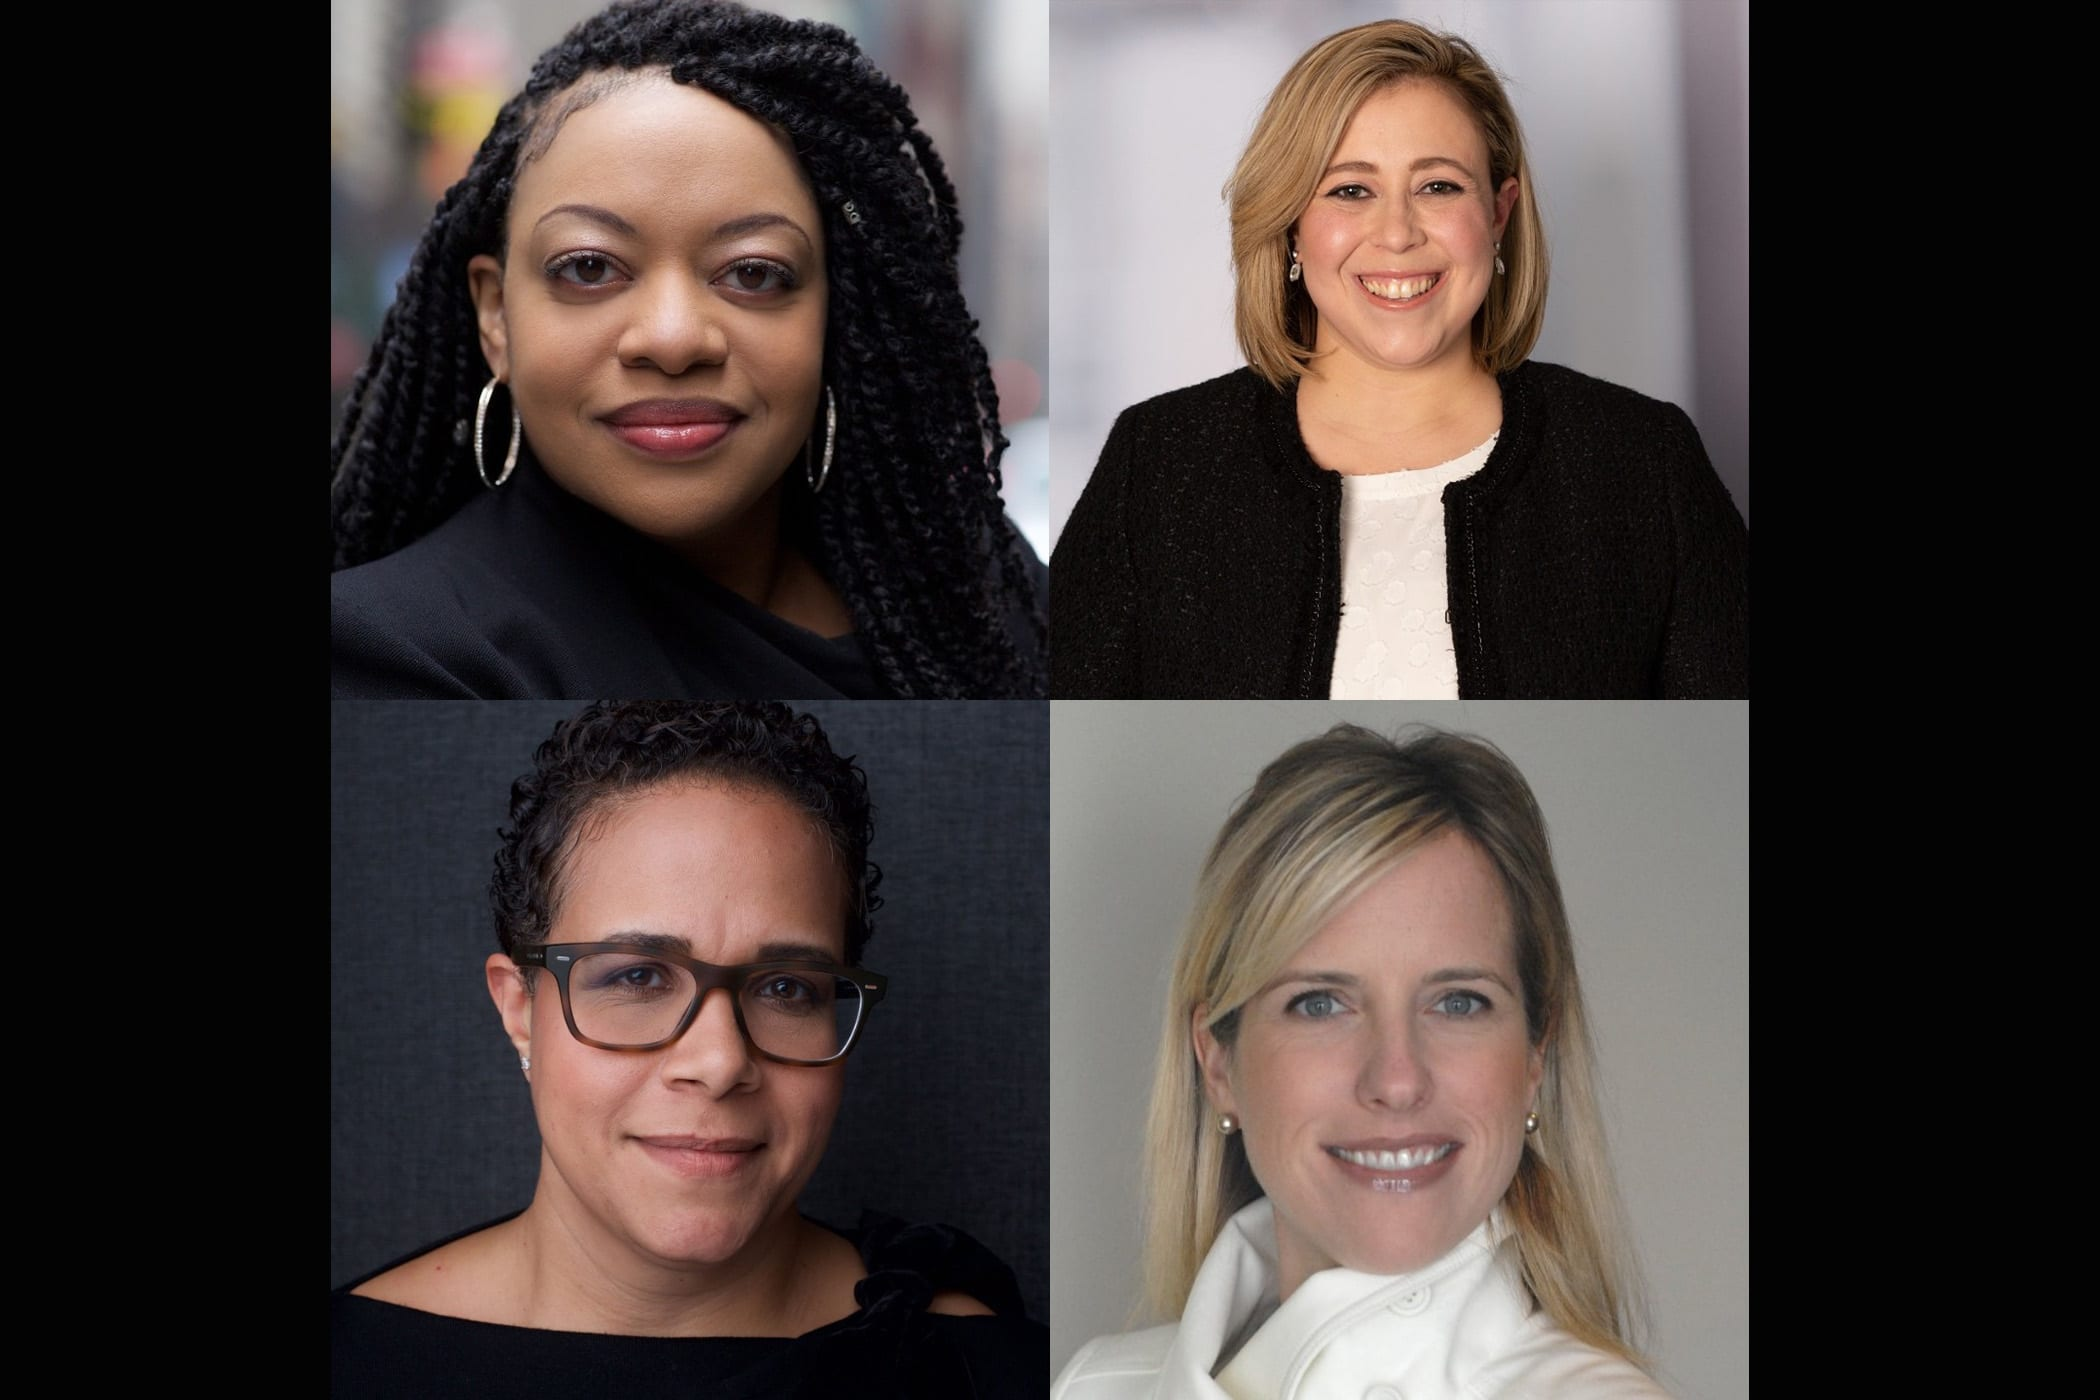 Women Panel 6 Top Female CRE Pros on the Future of Women in the Industry